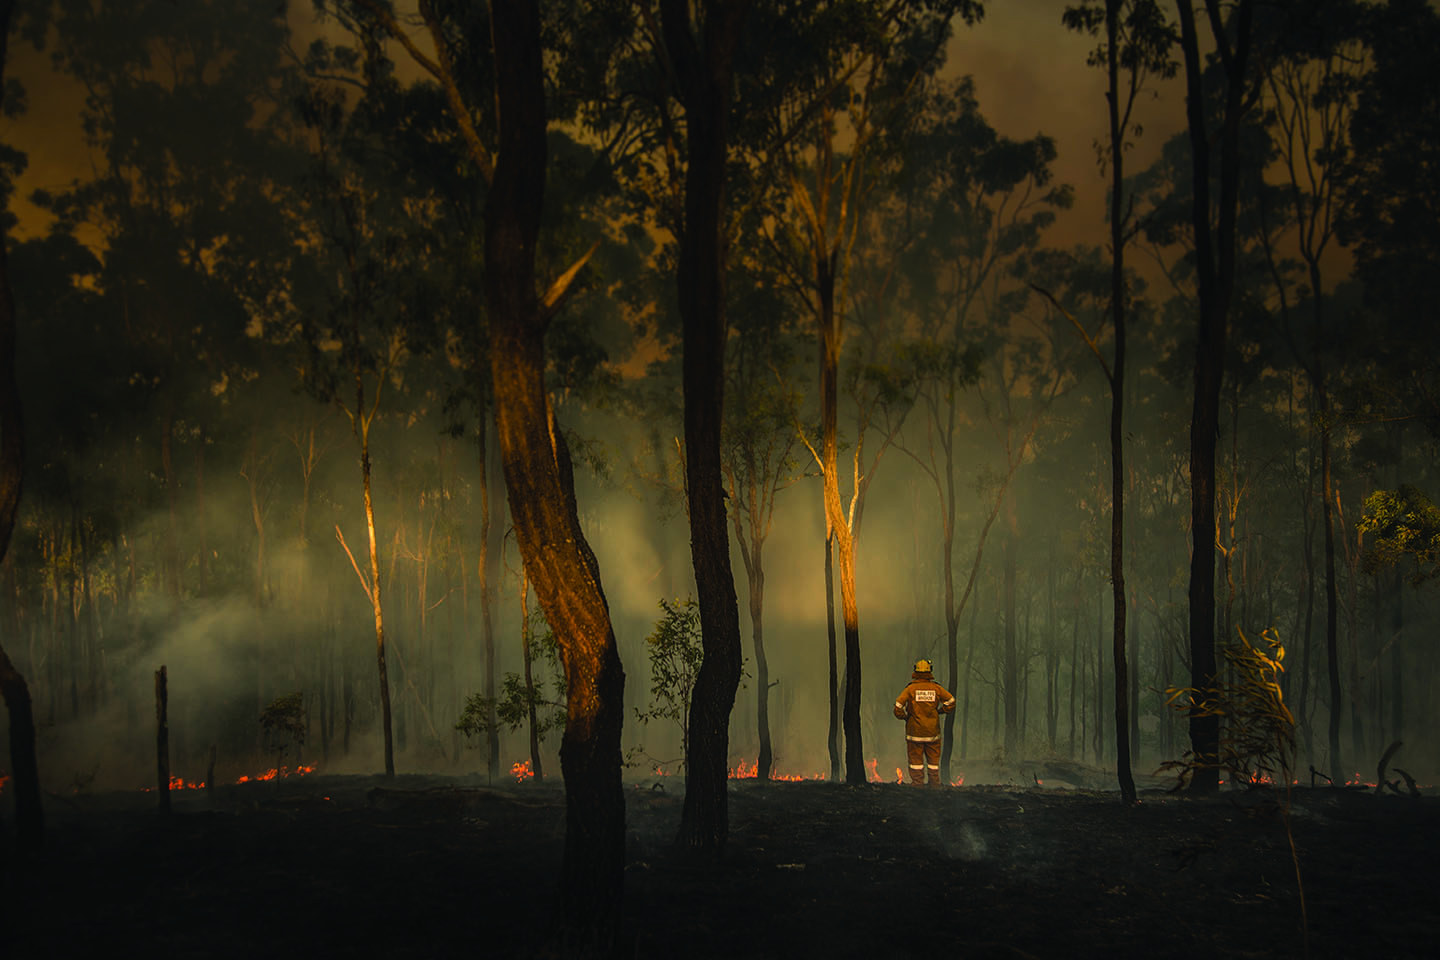 Image of the devastation left by the bushfires in Australia